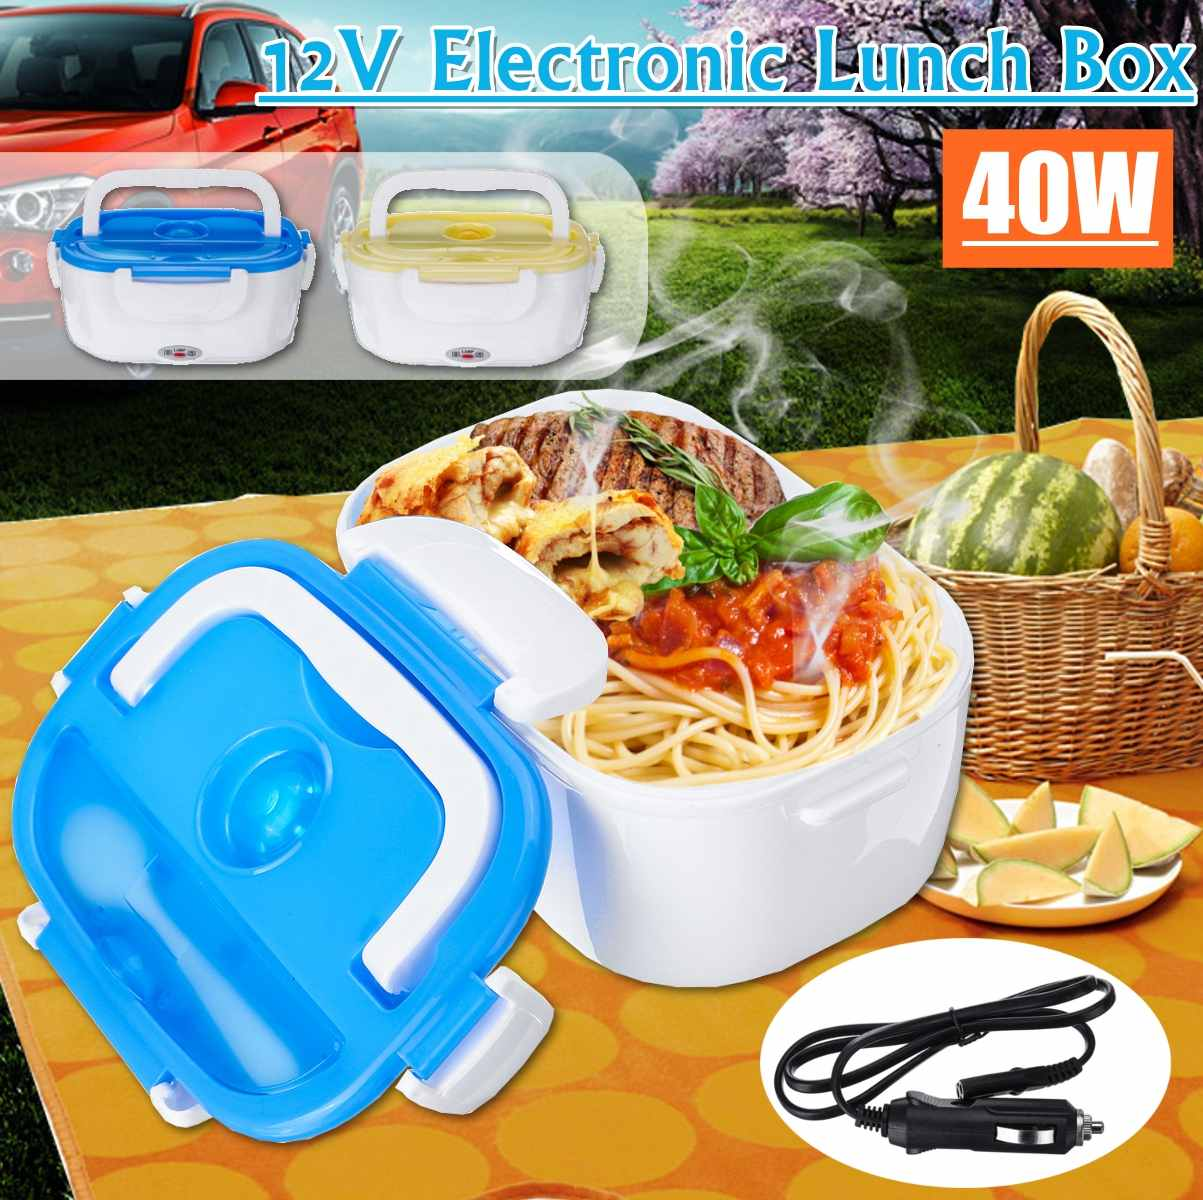 Portable Lunch Box Food Container Electric Heating Food Warmer Heater Rice Container Dinnerware Sets 12 V/40W